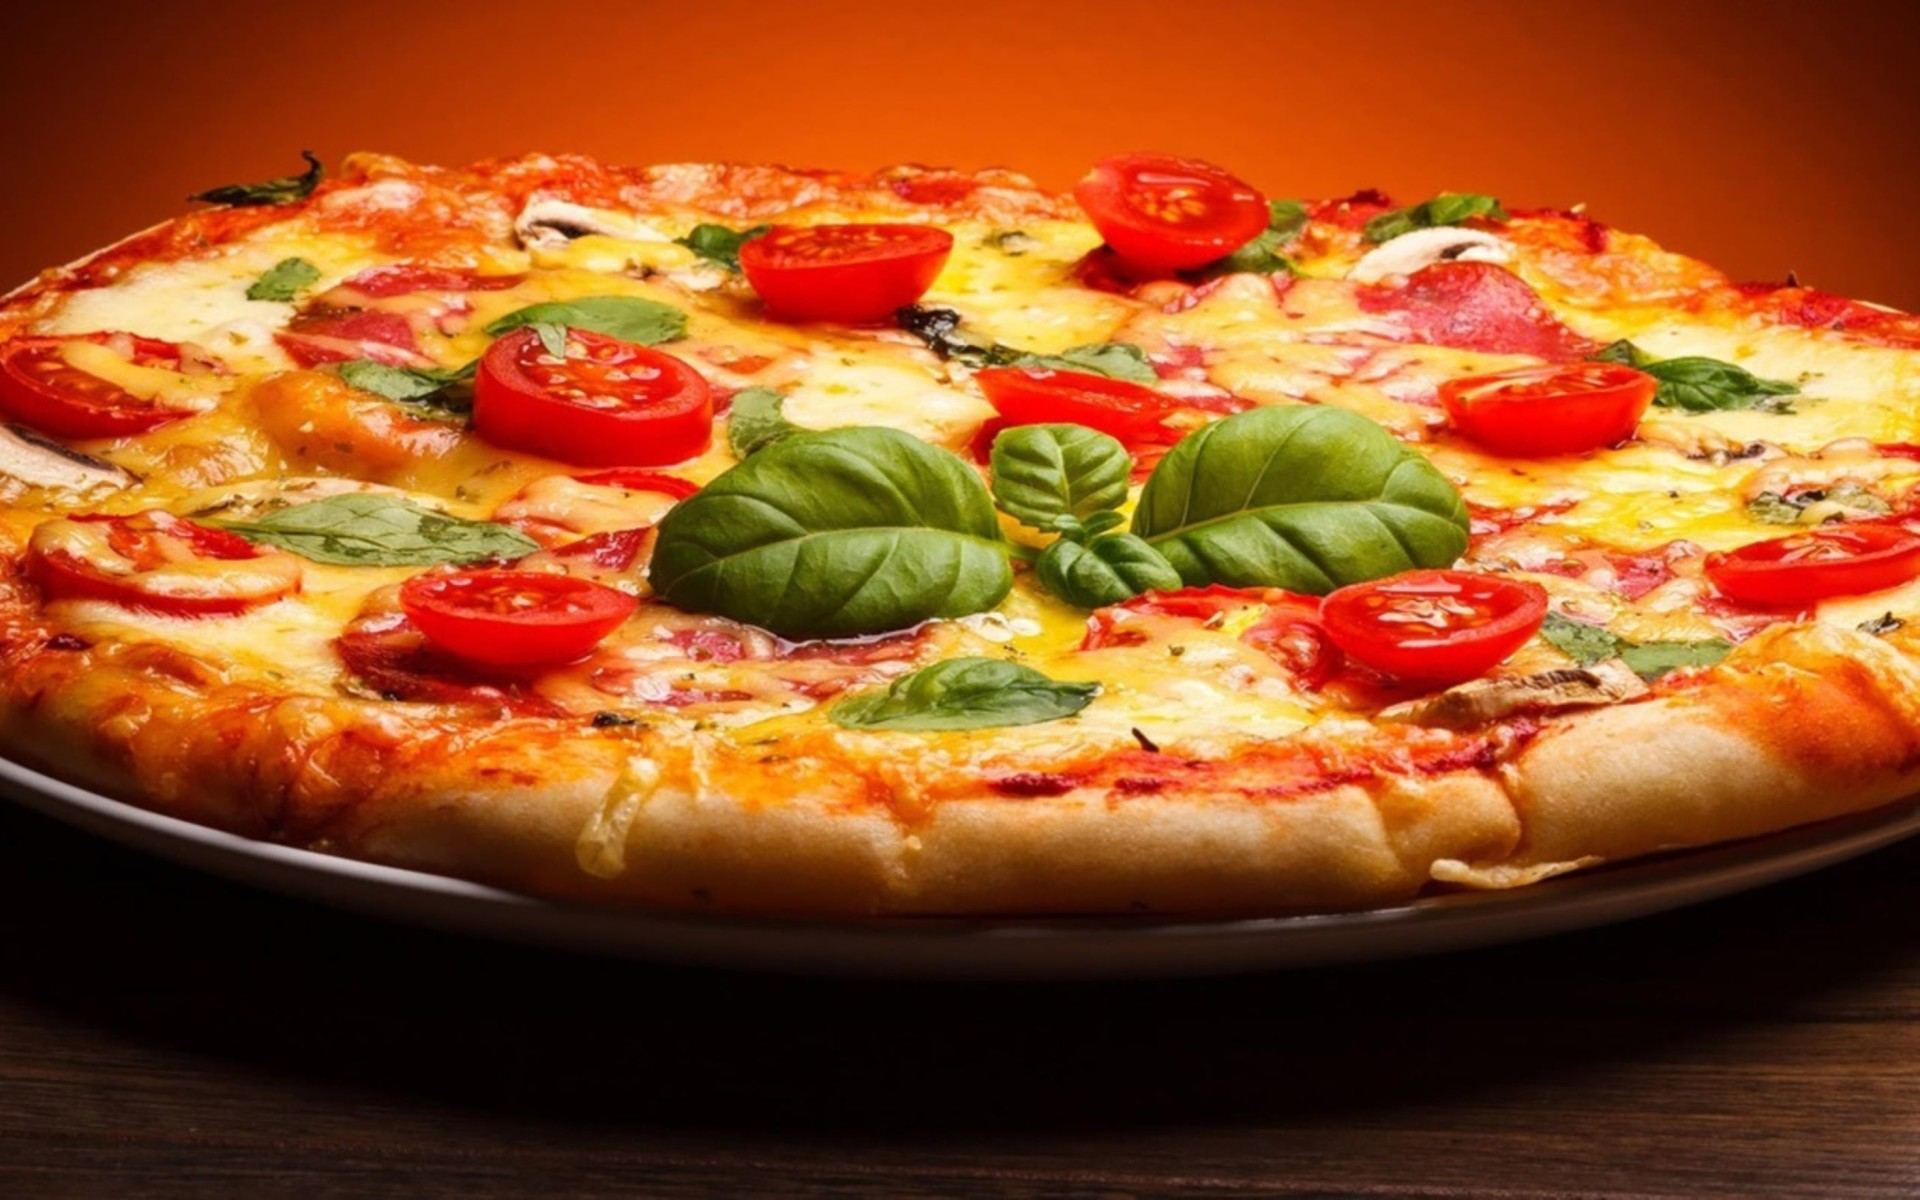 Pizza Food Delicious Photo Wallpaper